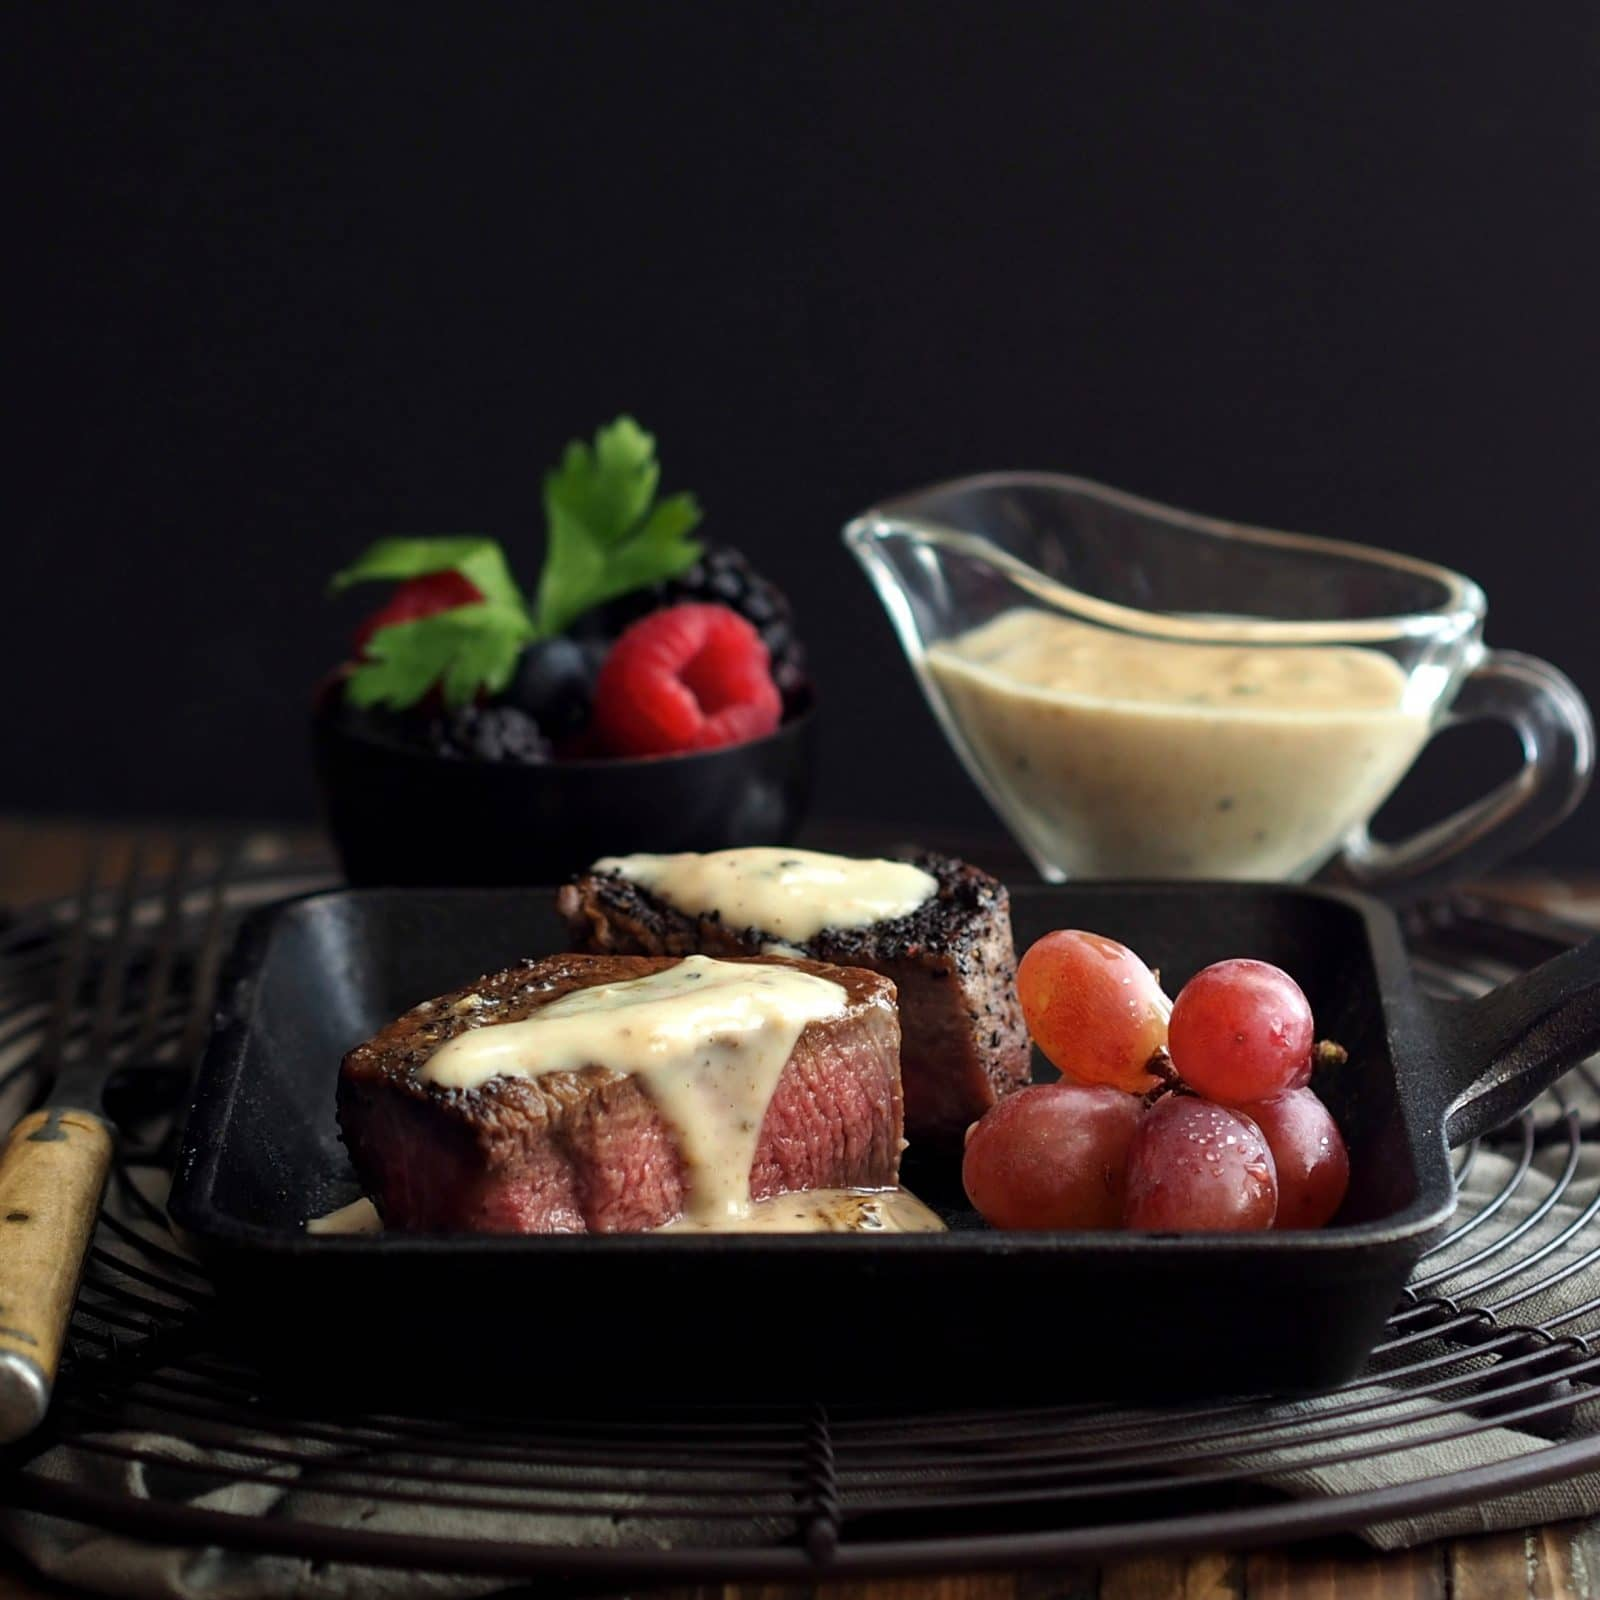 Brandy Peppercorn Sauce with Parmesan. THE sauce to take your steak from great to amazing. The perfect sauce to serve with beef filet or beef tenderloin. simply sated